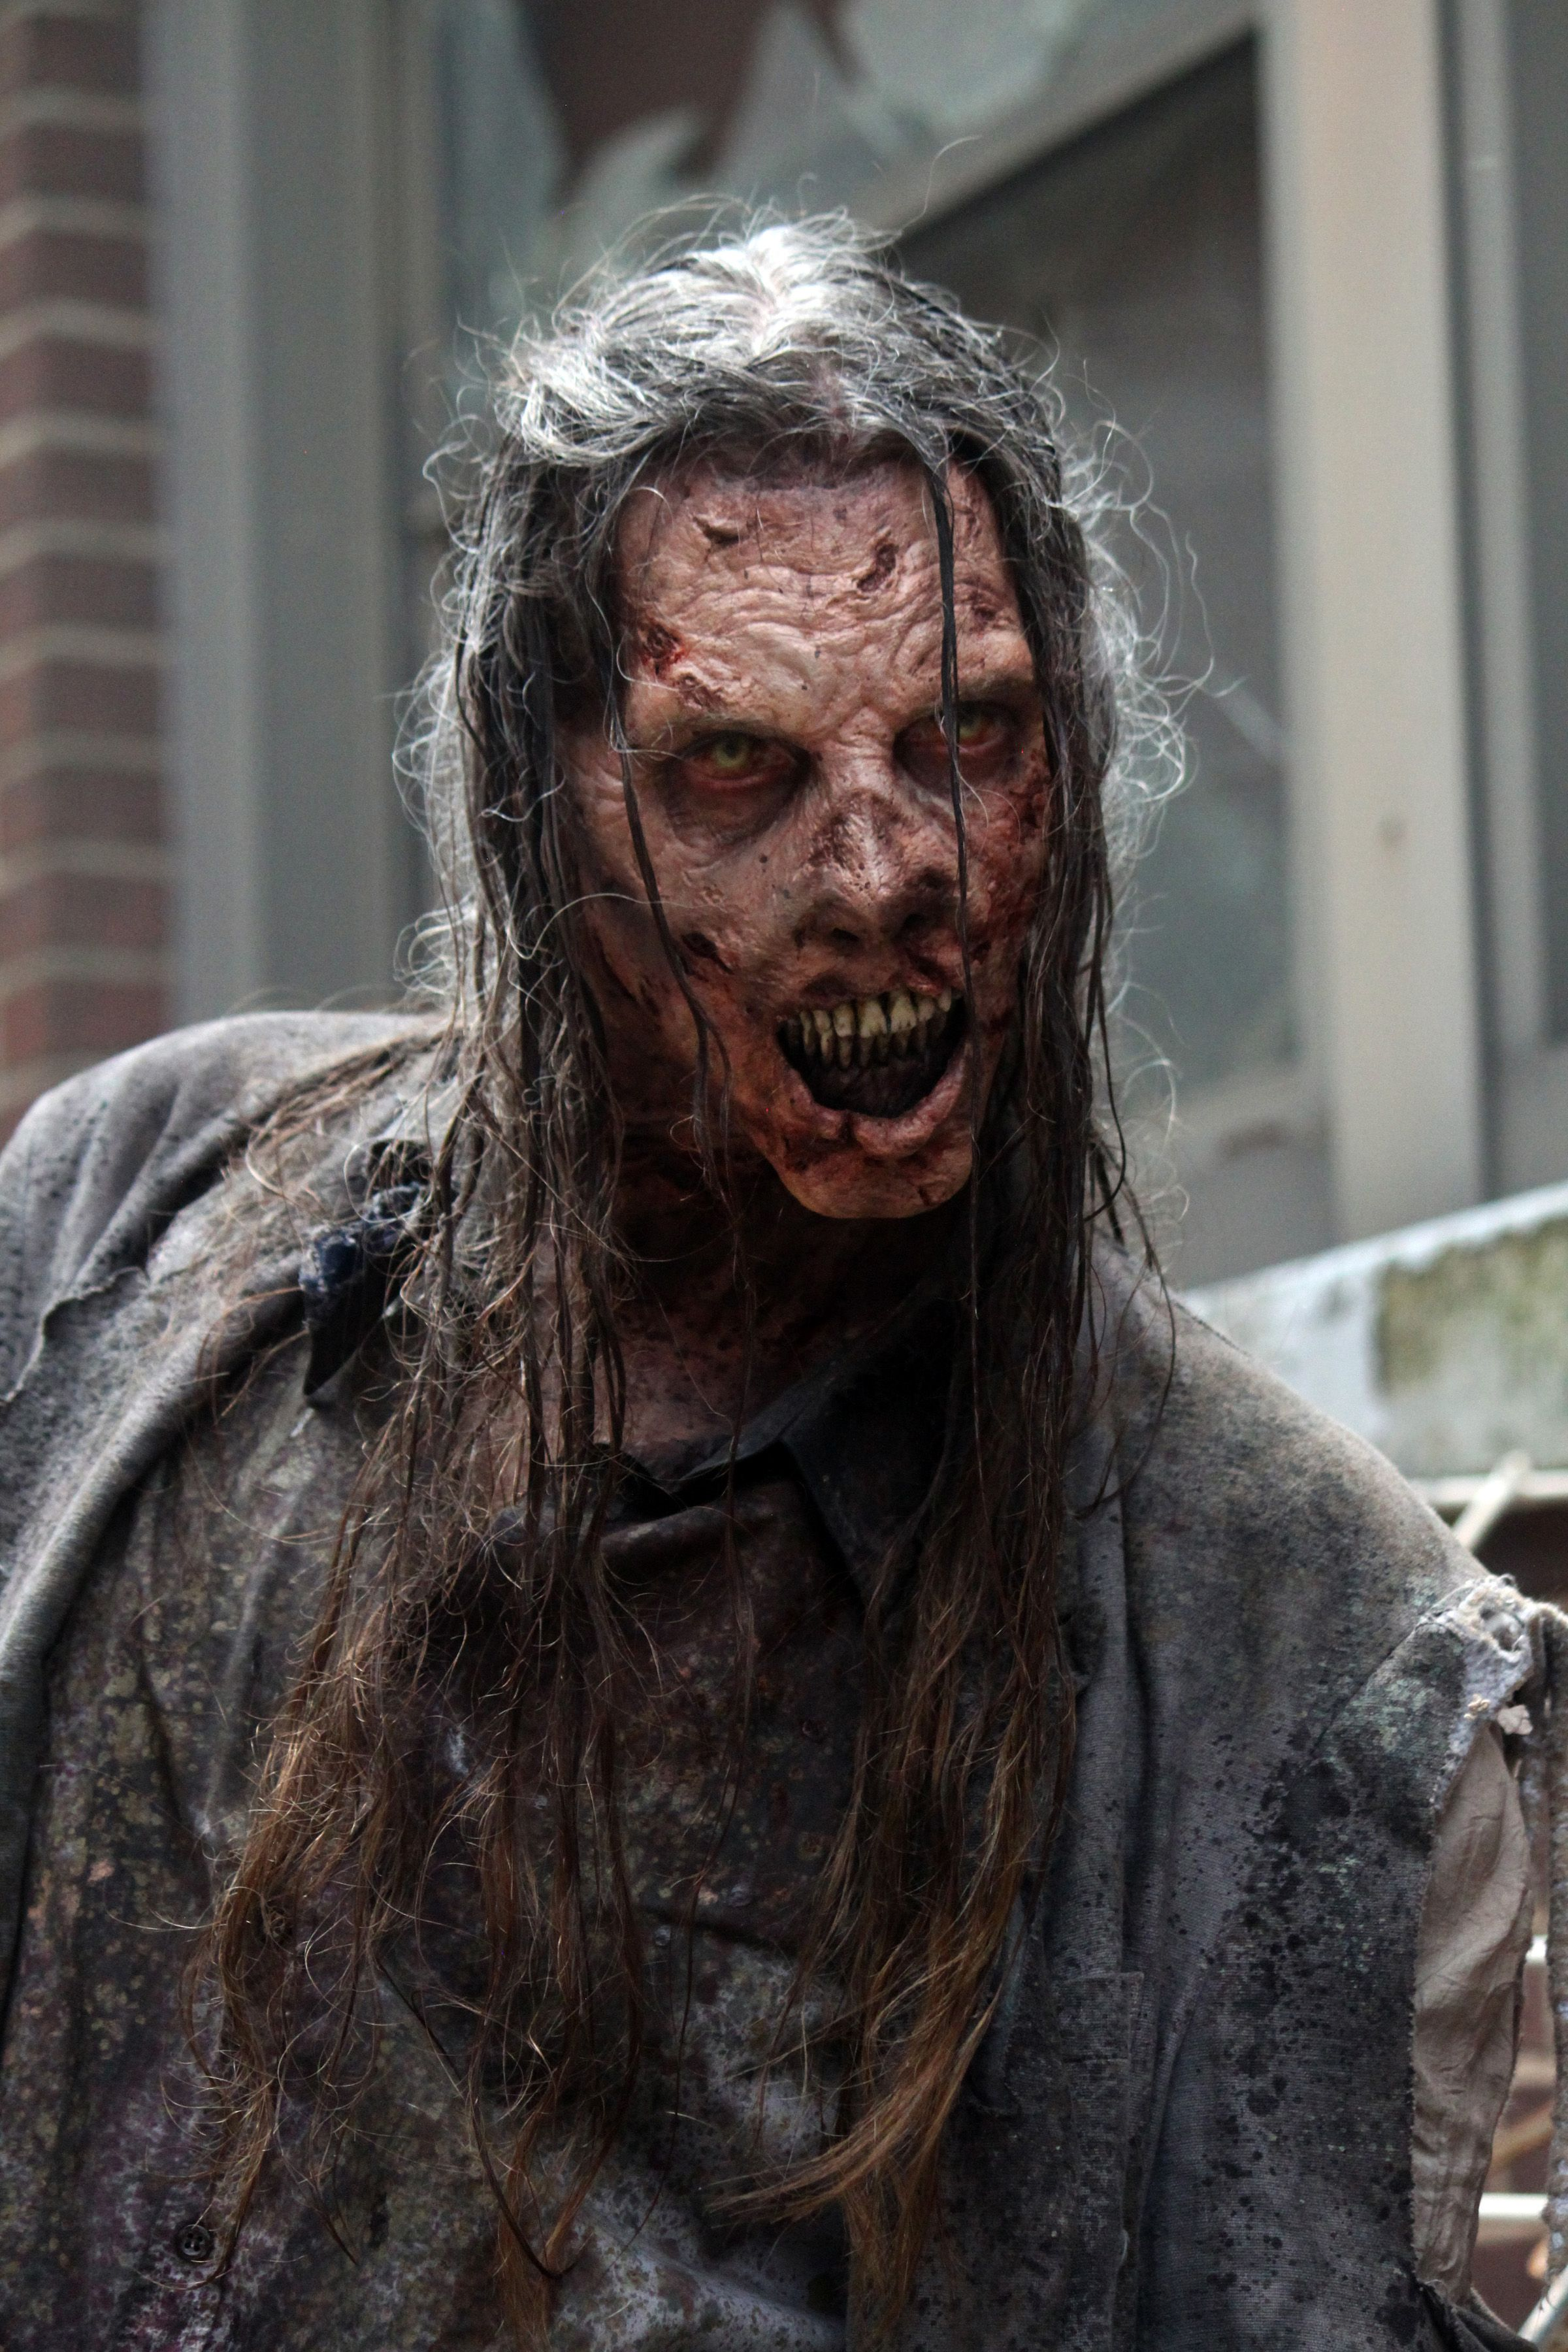 the walking dead season 5 teaser trailers and images | collider